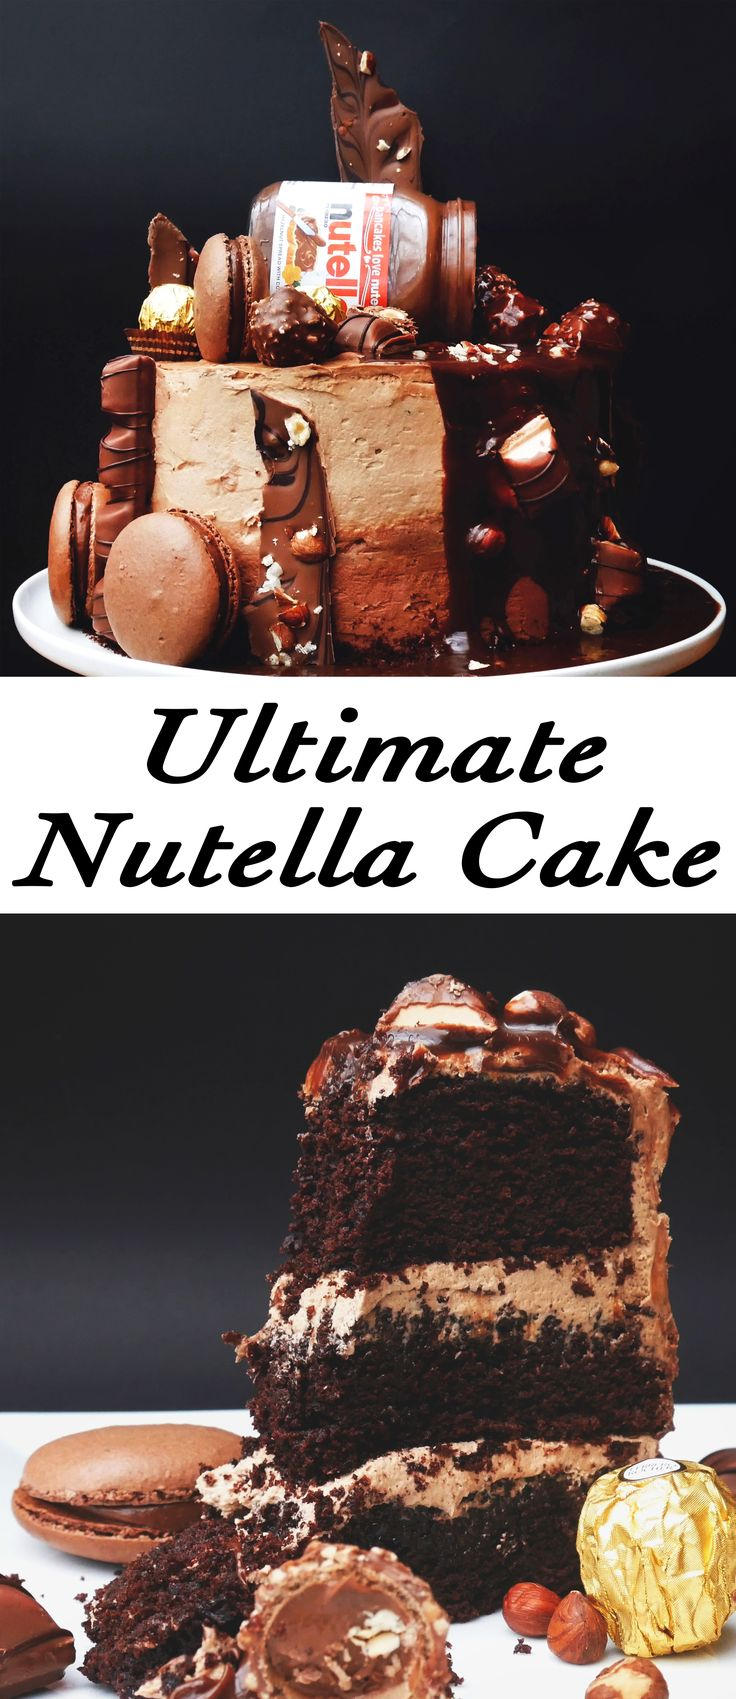 Oh my gosh!!!!!! This extremely chocolate cake has it all: Nutella, Kinder Bueno, Ferrero Rocher, Macarons, and Hazelnuts!